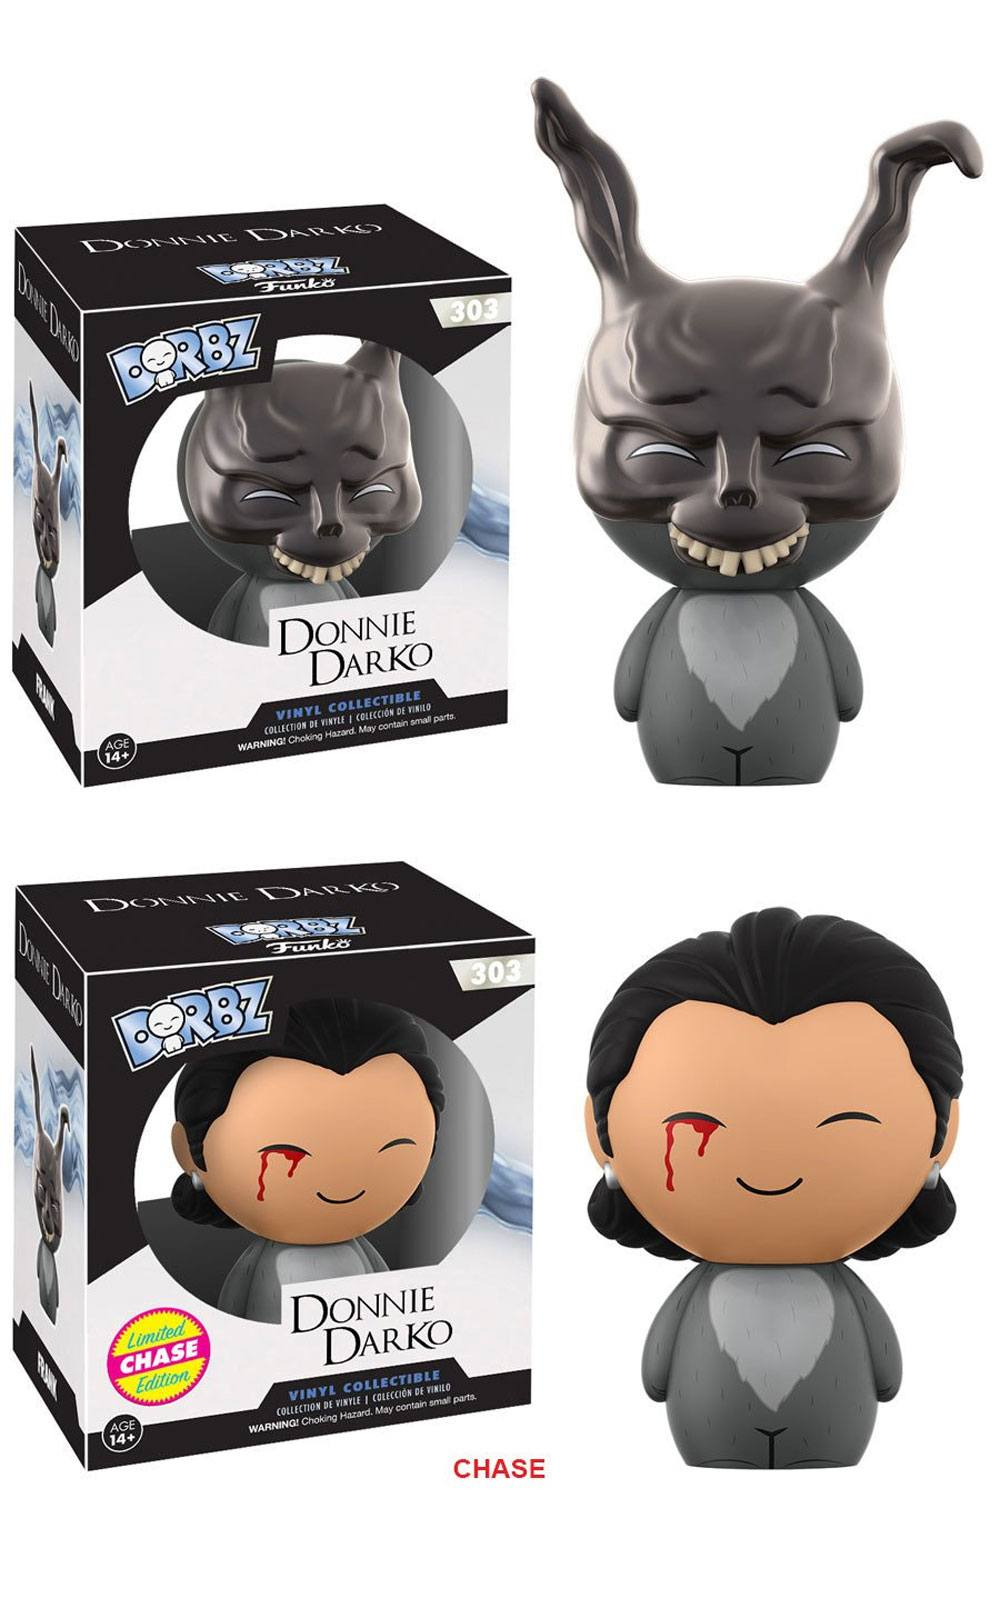 Donnie Darko Vinyl Sugar Dorbz Vinyl Figures Frank 8 cm Assortment (6)